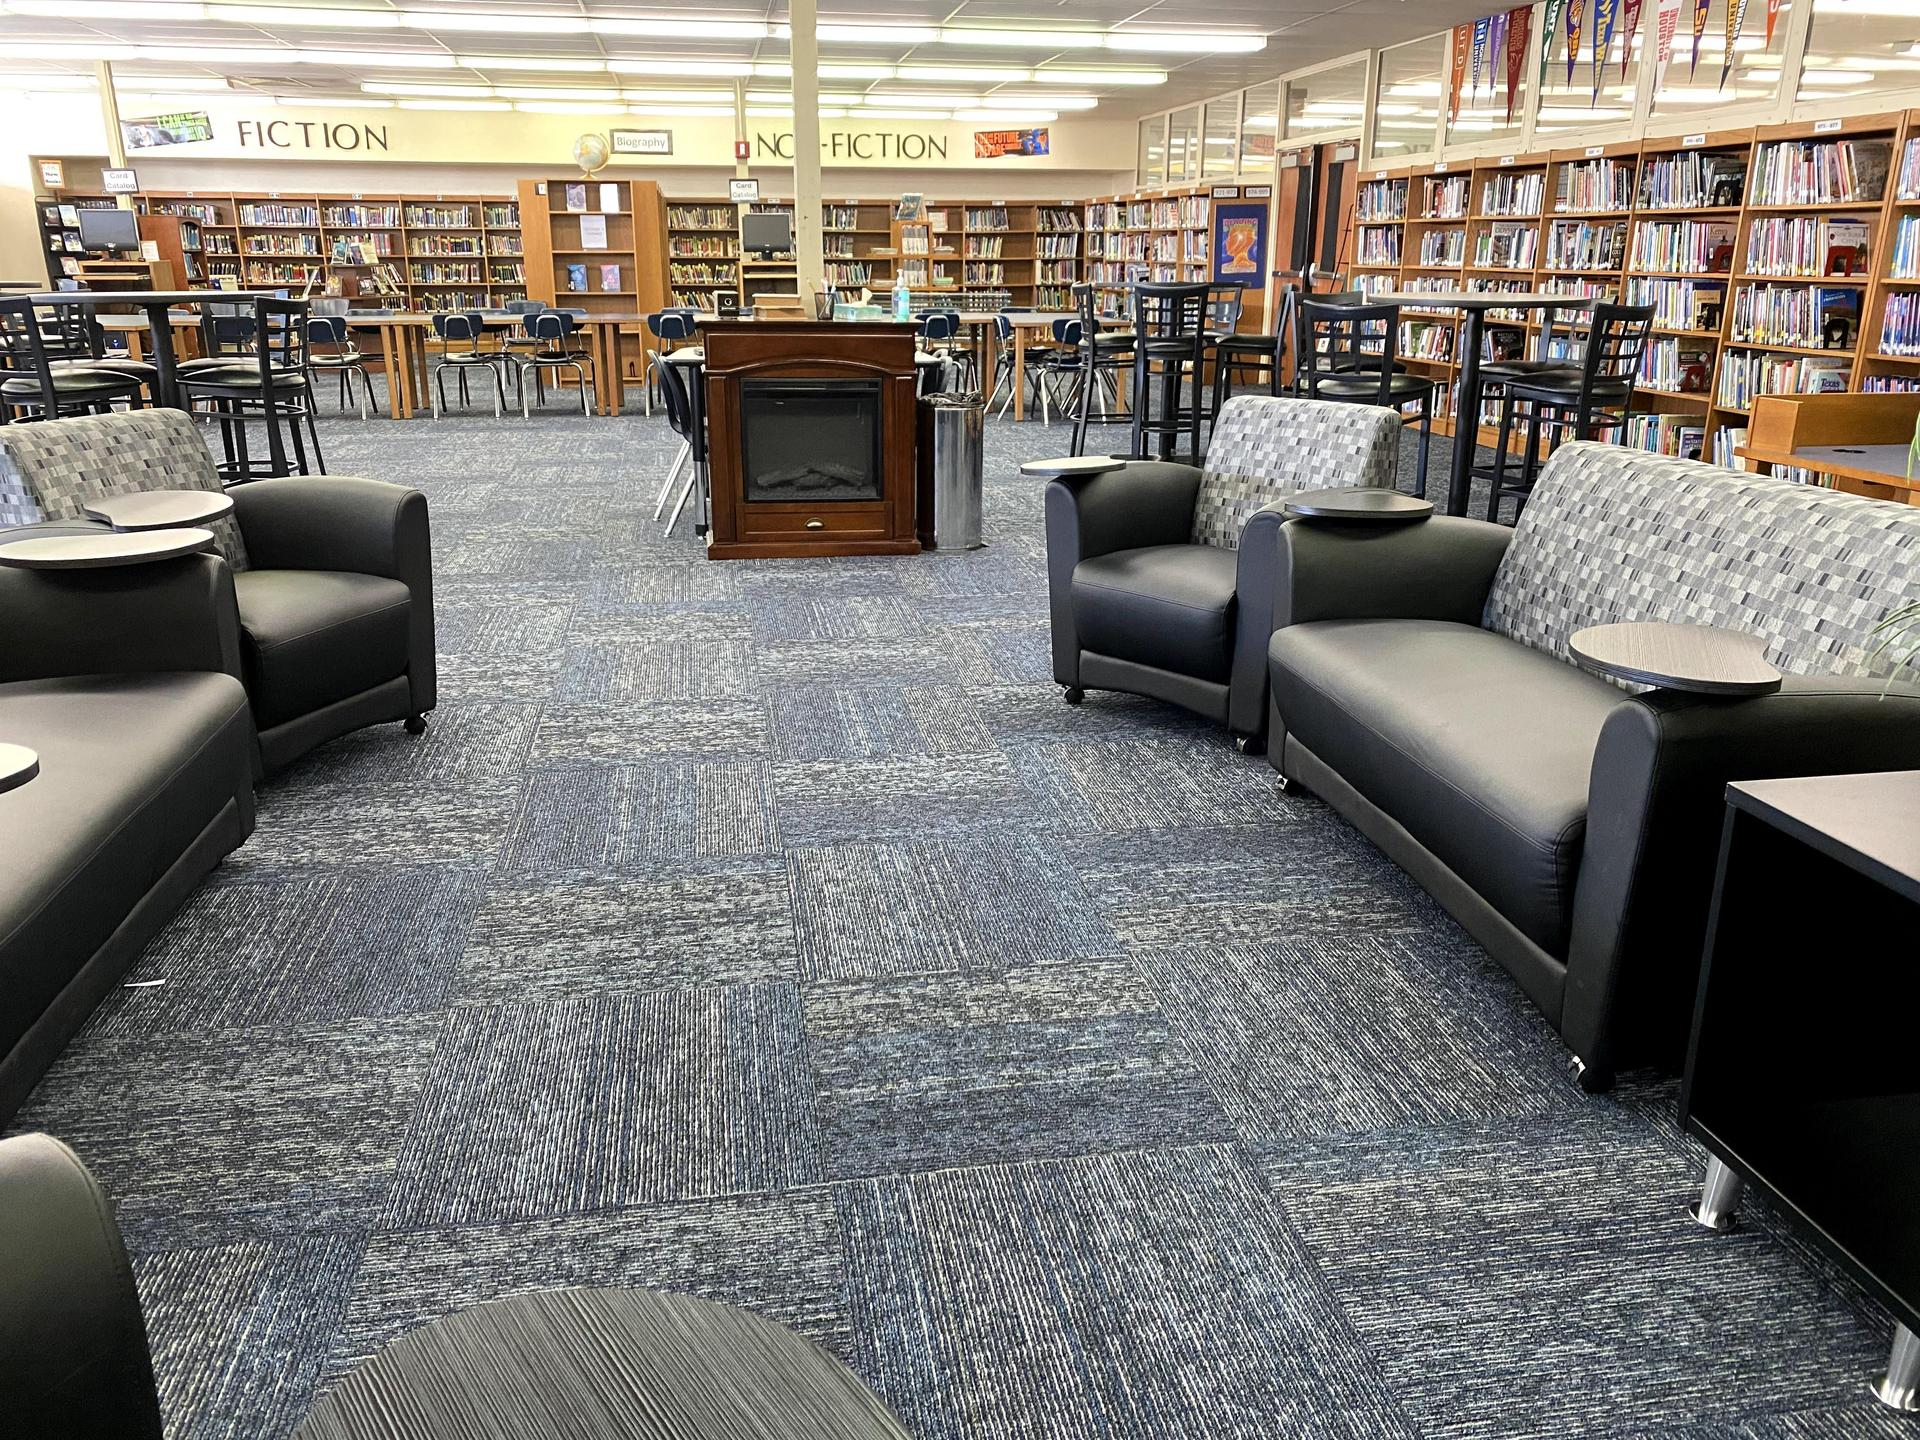 Library Picture